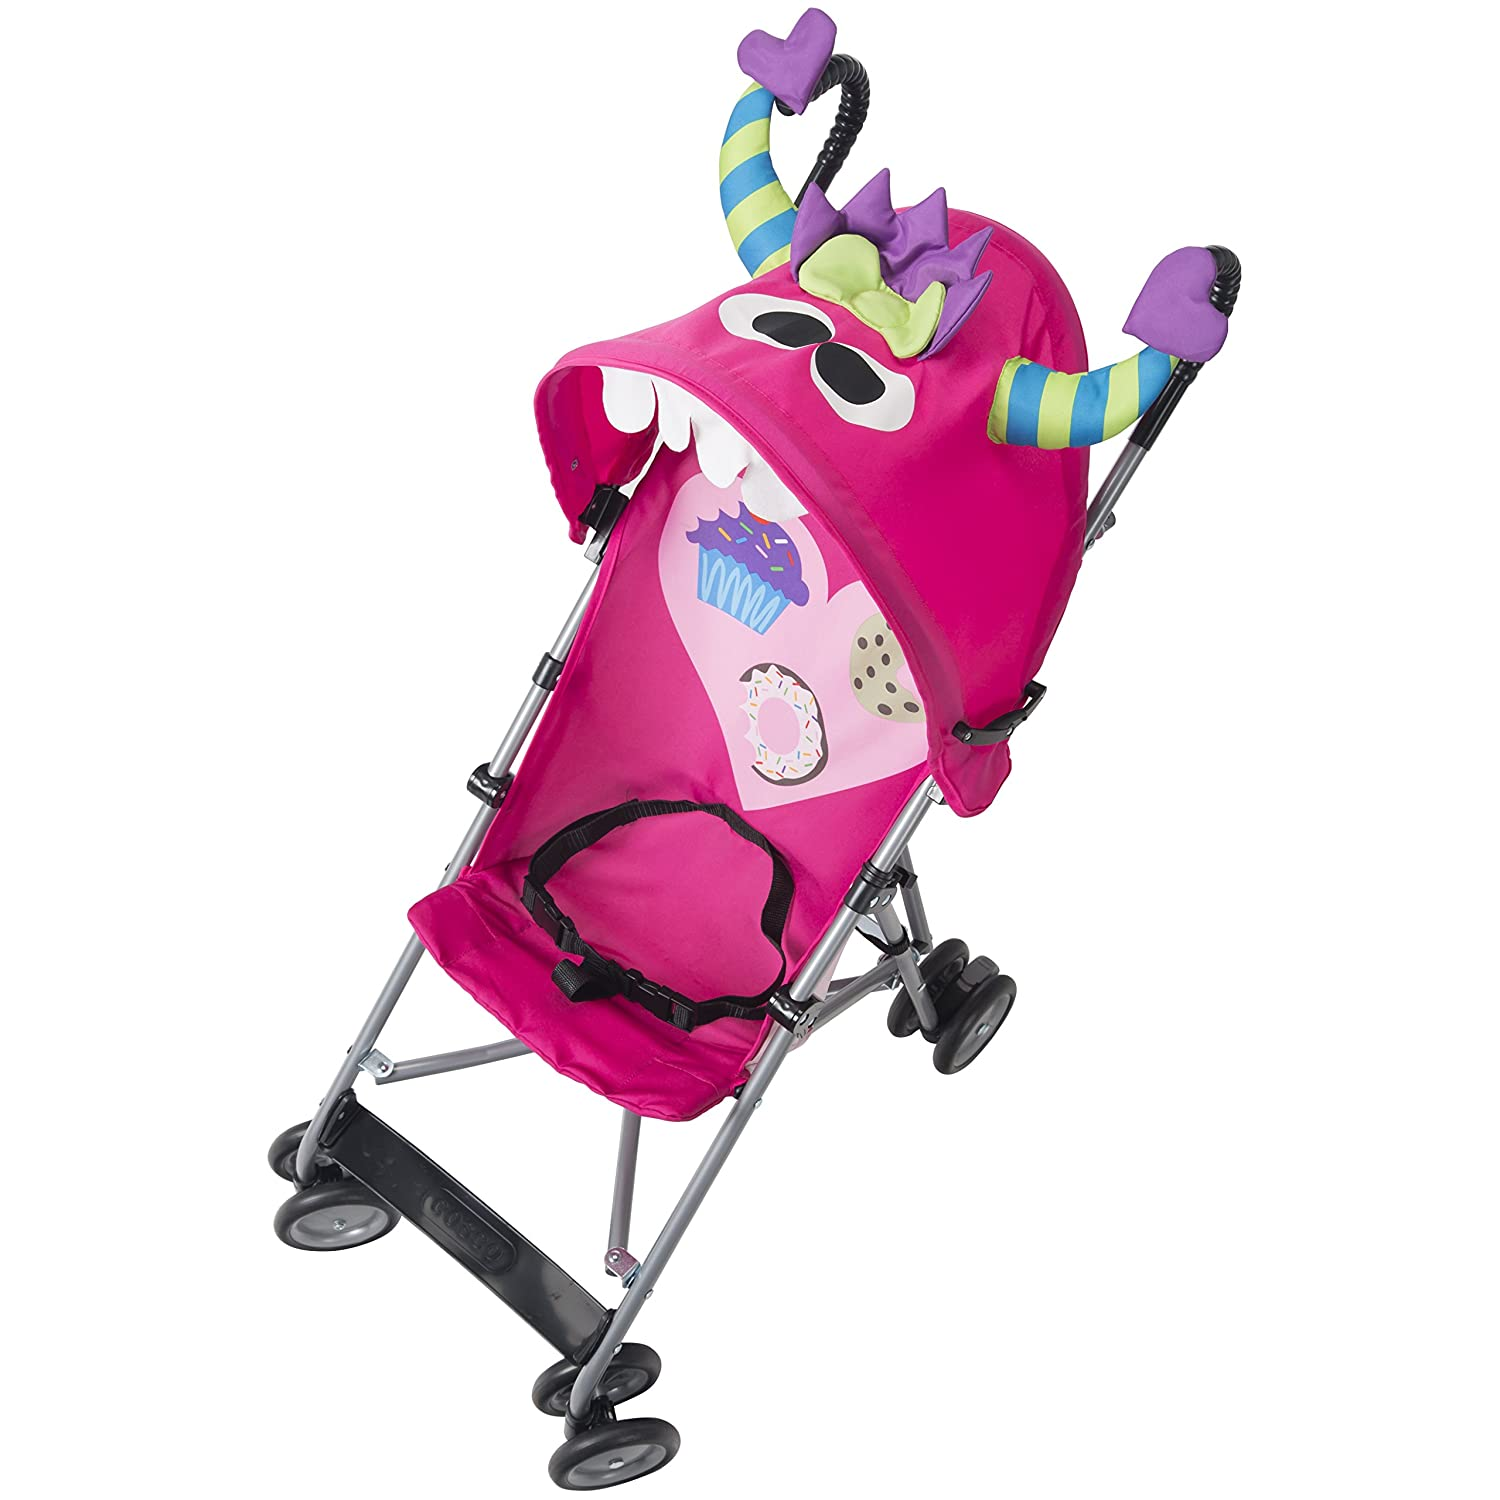 Cosco Umbrella Stroller2